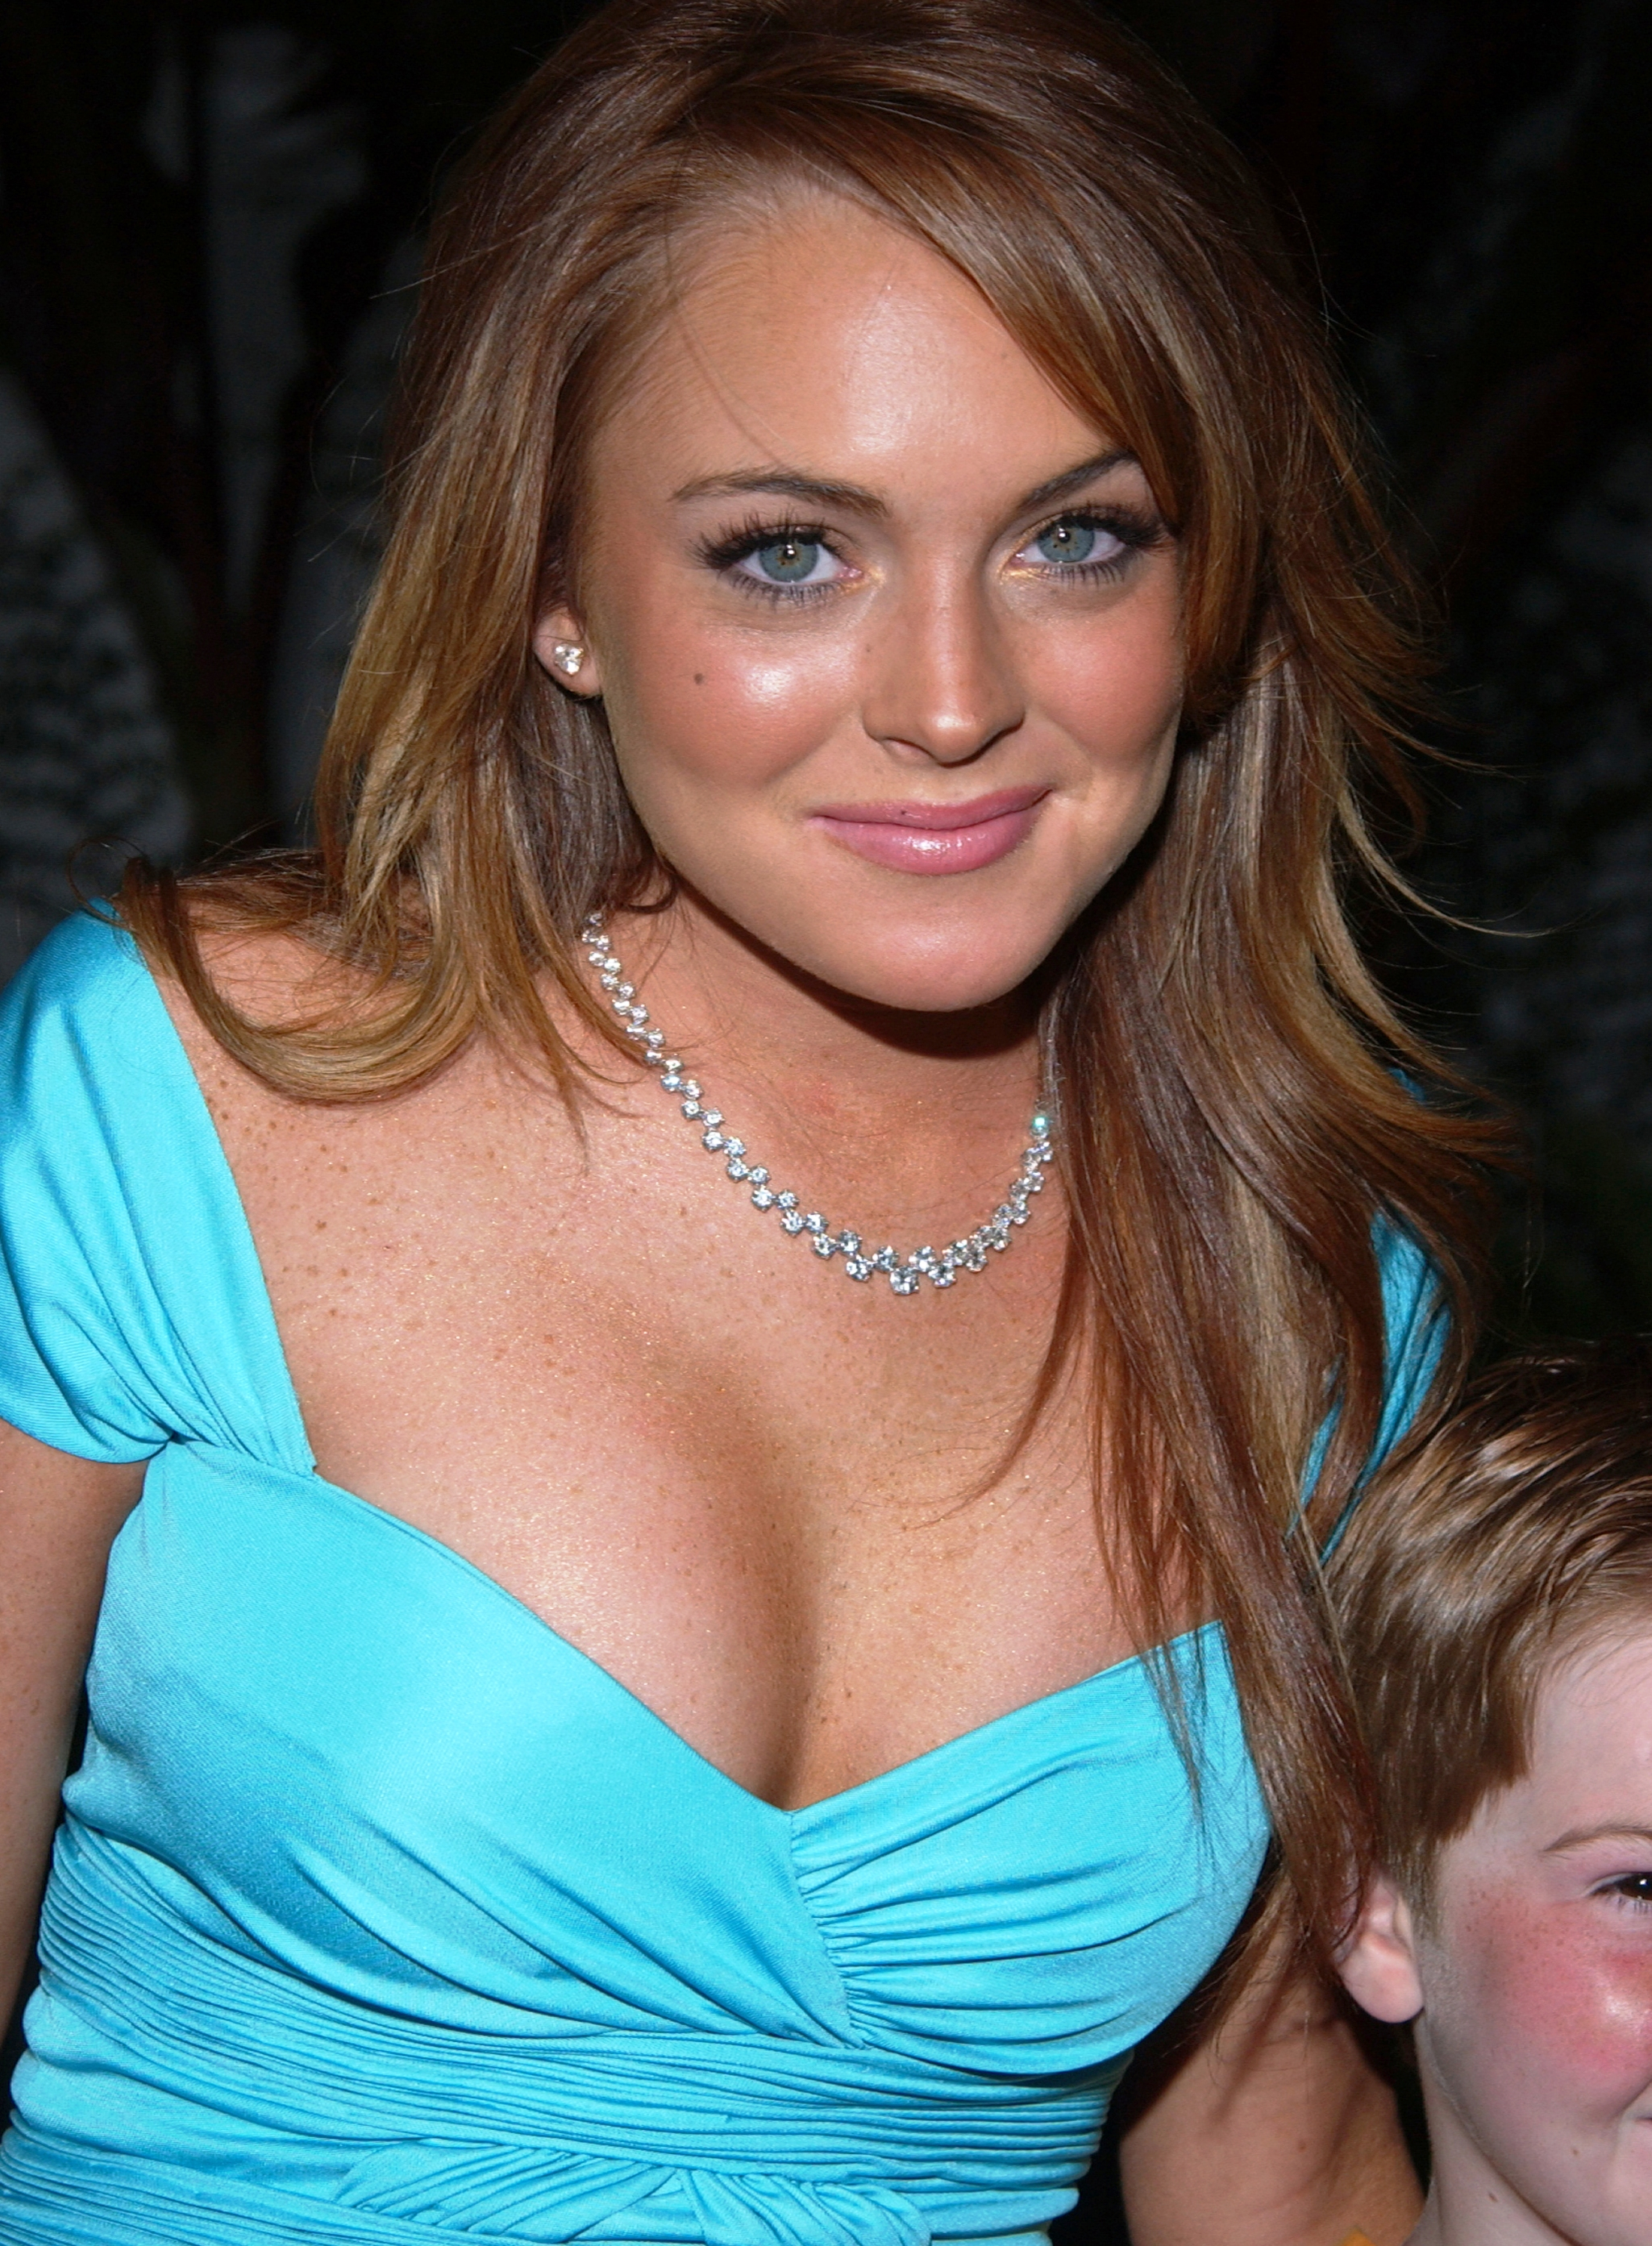 Lindsay Lohan hot young mean girls